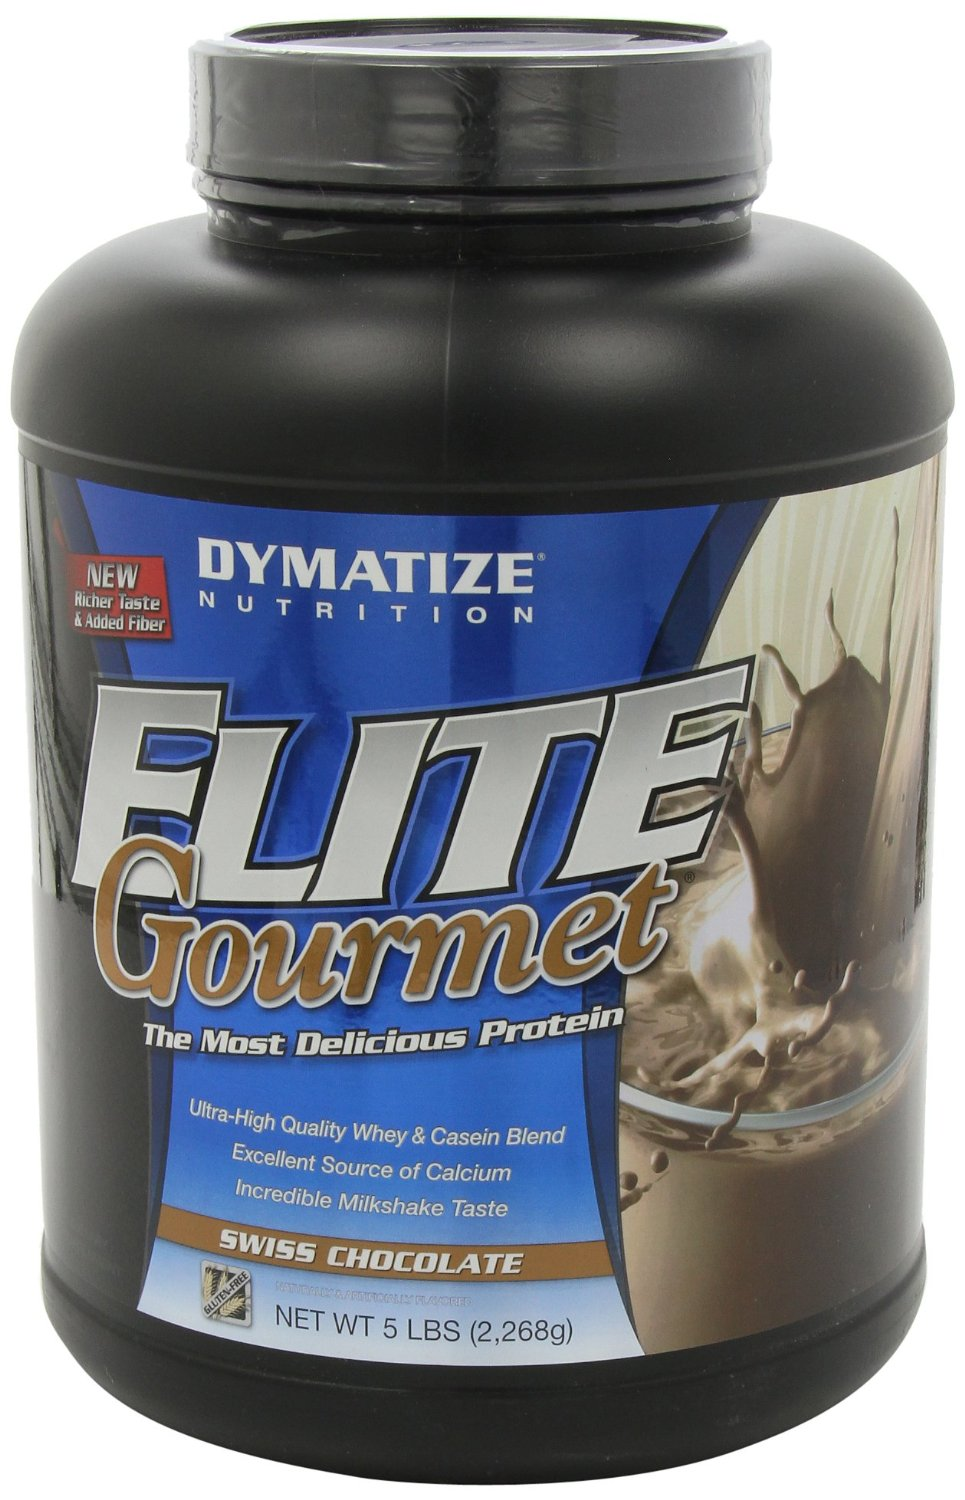 Elite Gourmet Protein By Dymatize Nutrition, Swiss Chocolate, 5lb